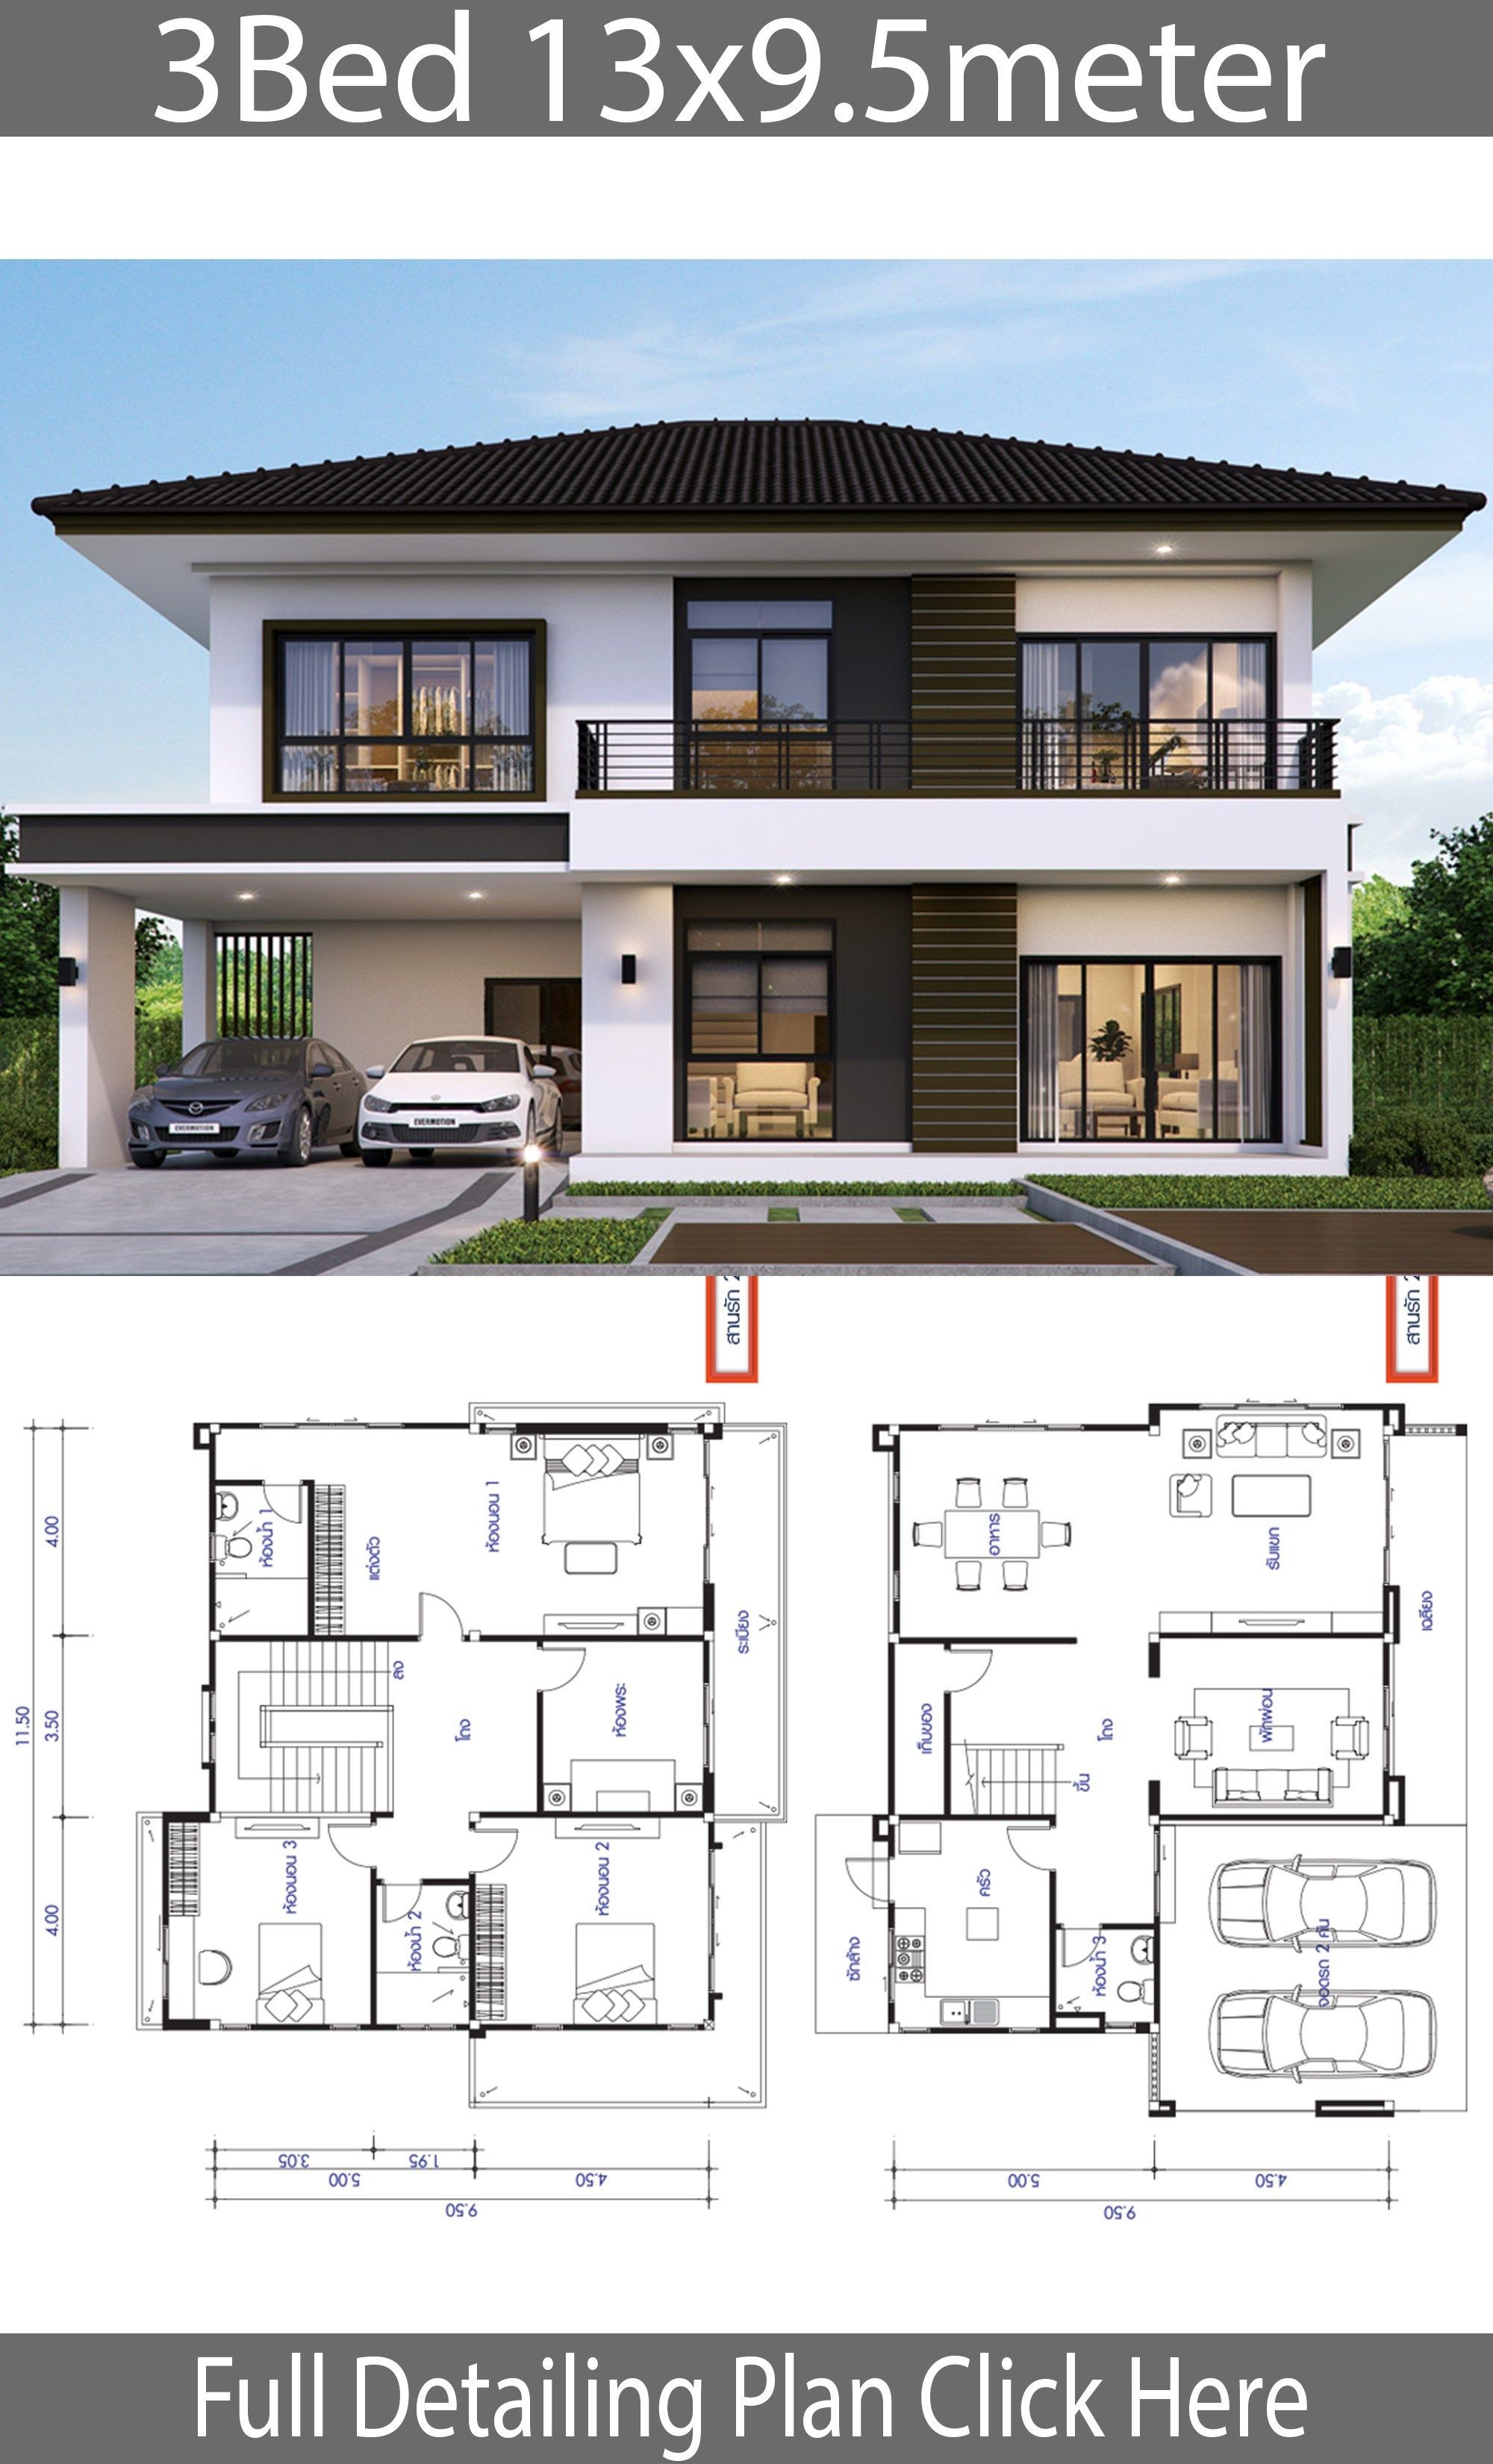 Custom House Plans Designs Fresh House Design Plan 13x9 5m with 3 Bedrooms